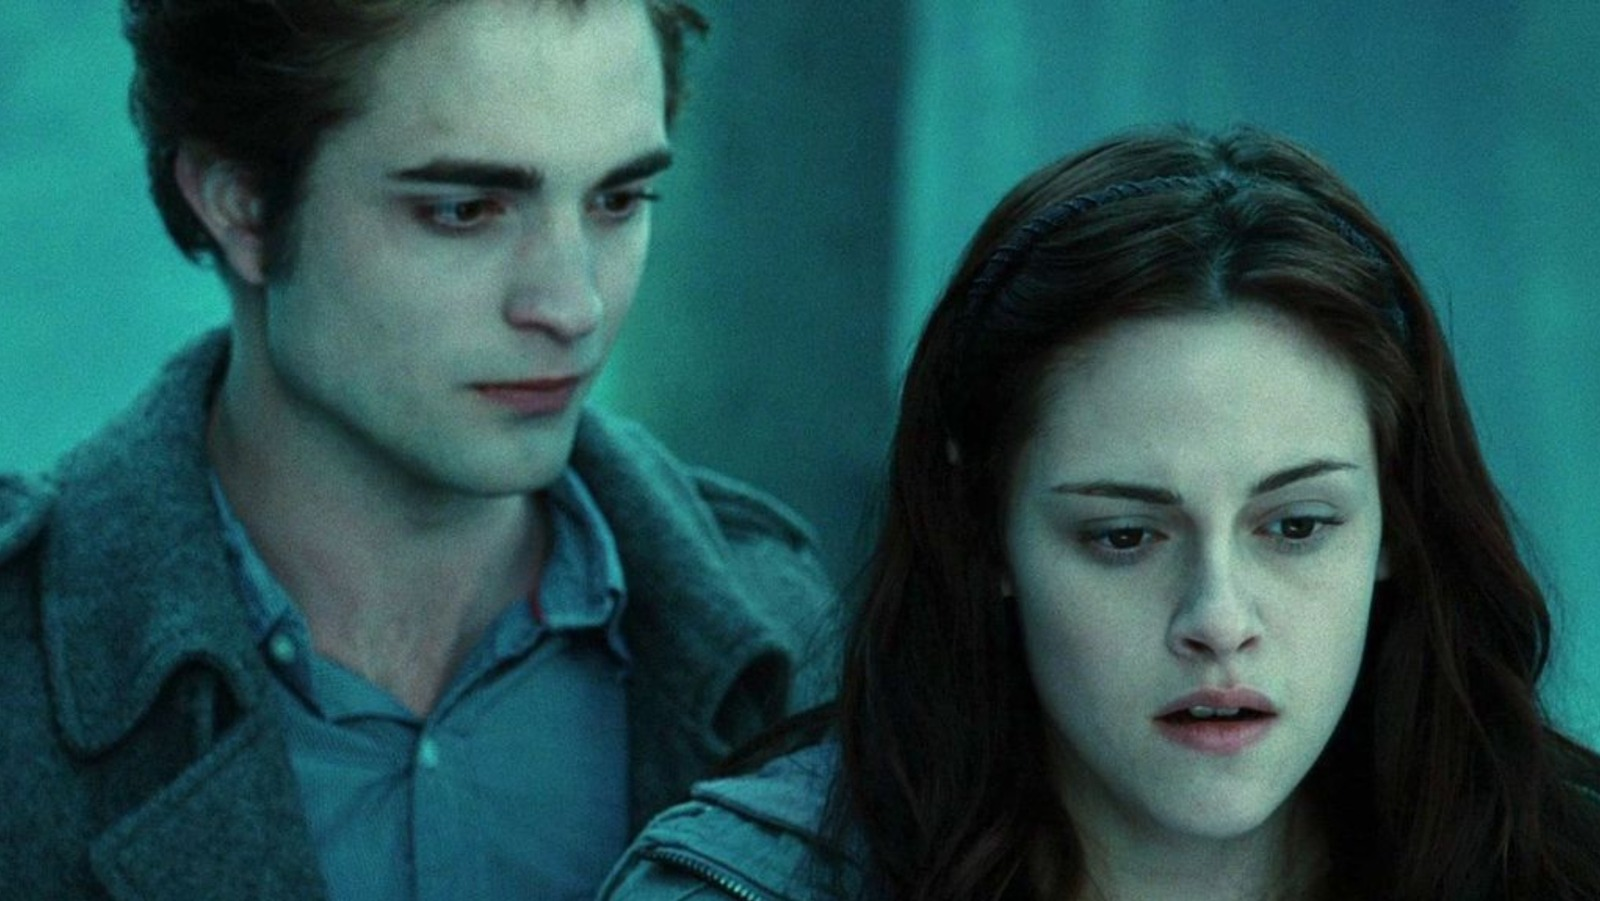 Here S How You Can Watch All Of The Twilight Movies